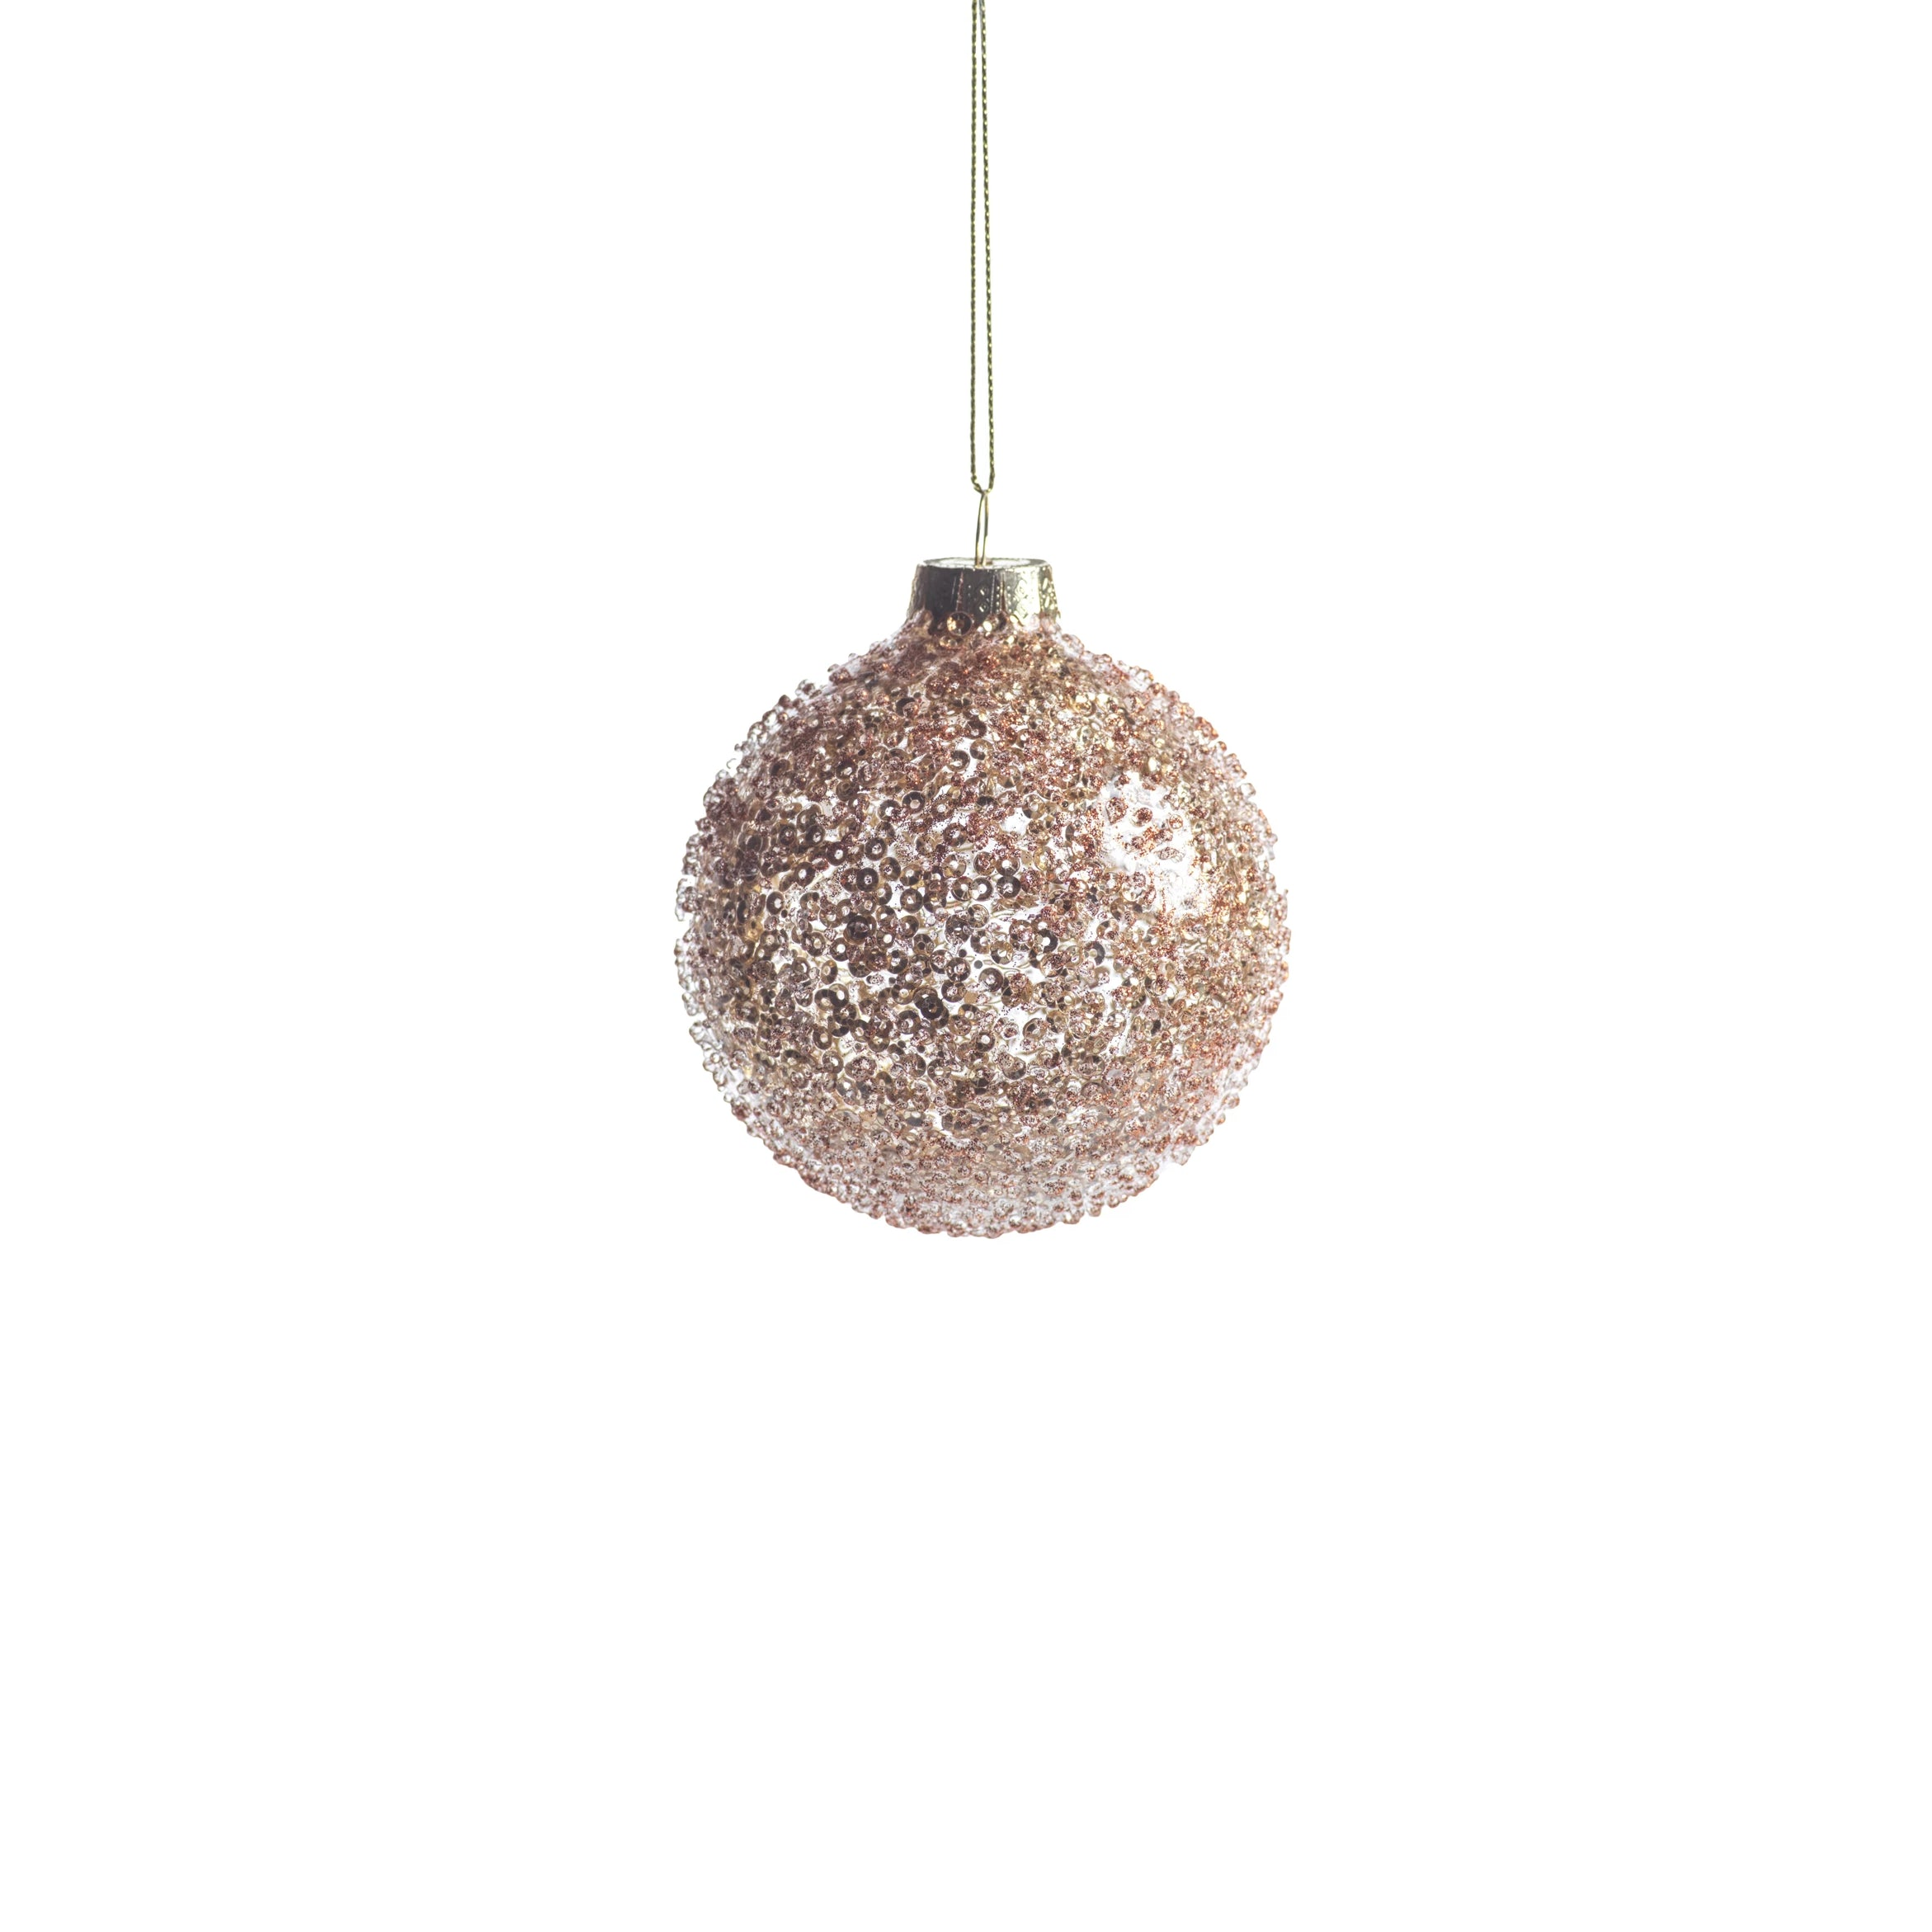 Burnt Gold Beaded Ball Ornament - CARLYLE AVENUE